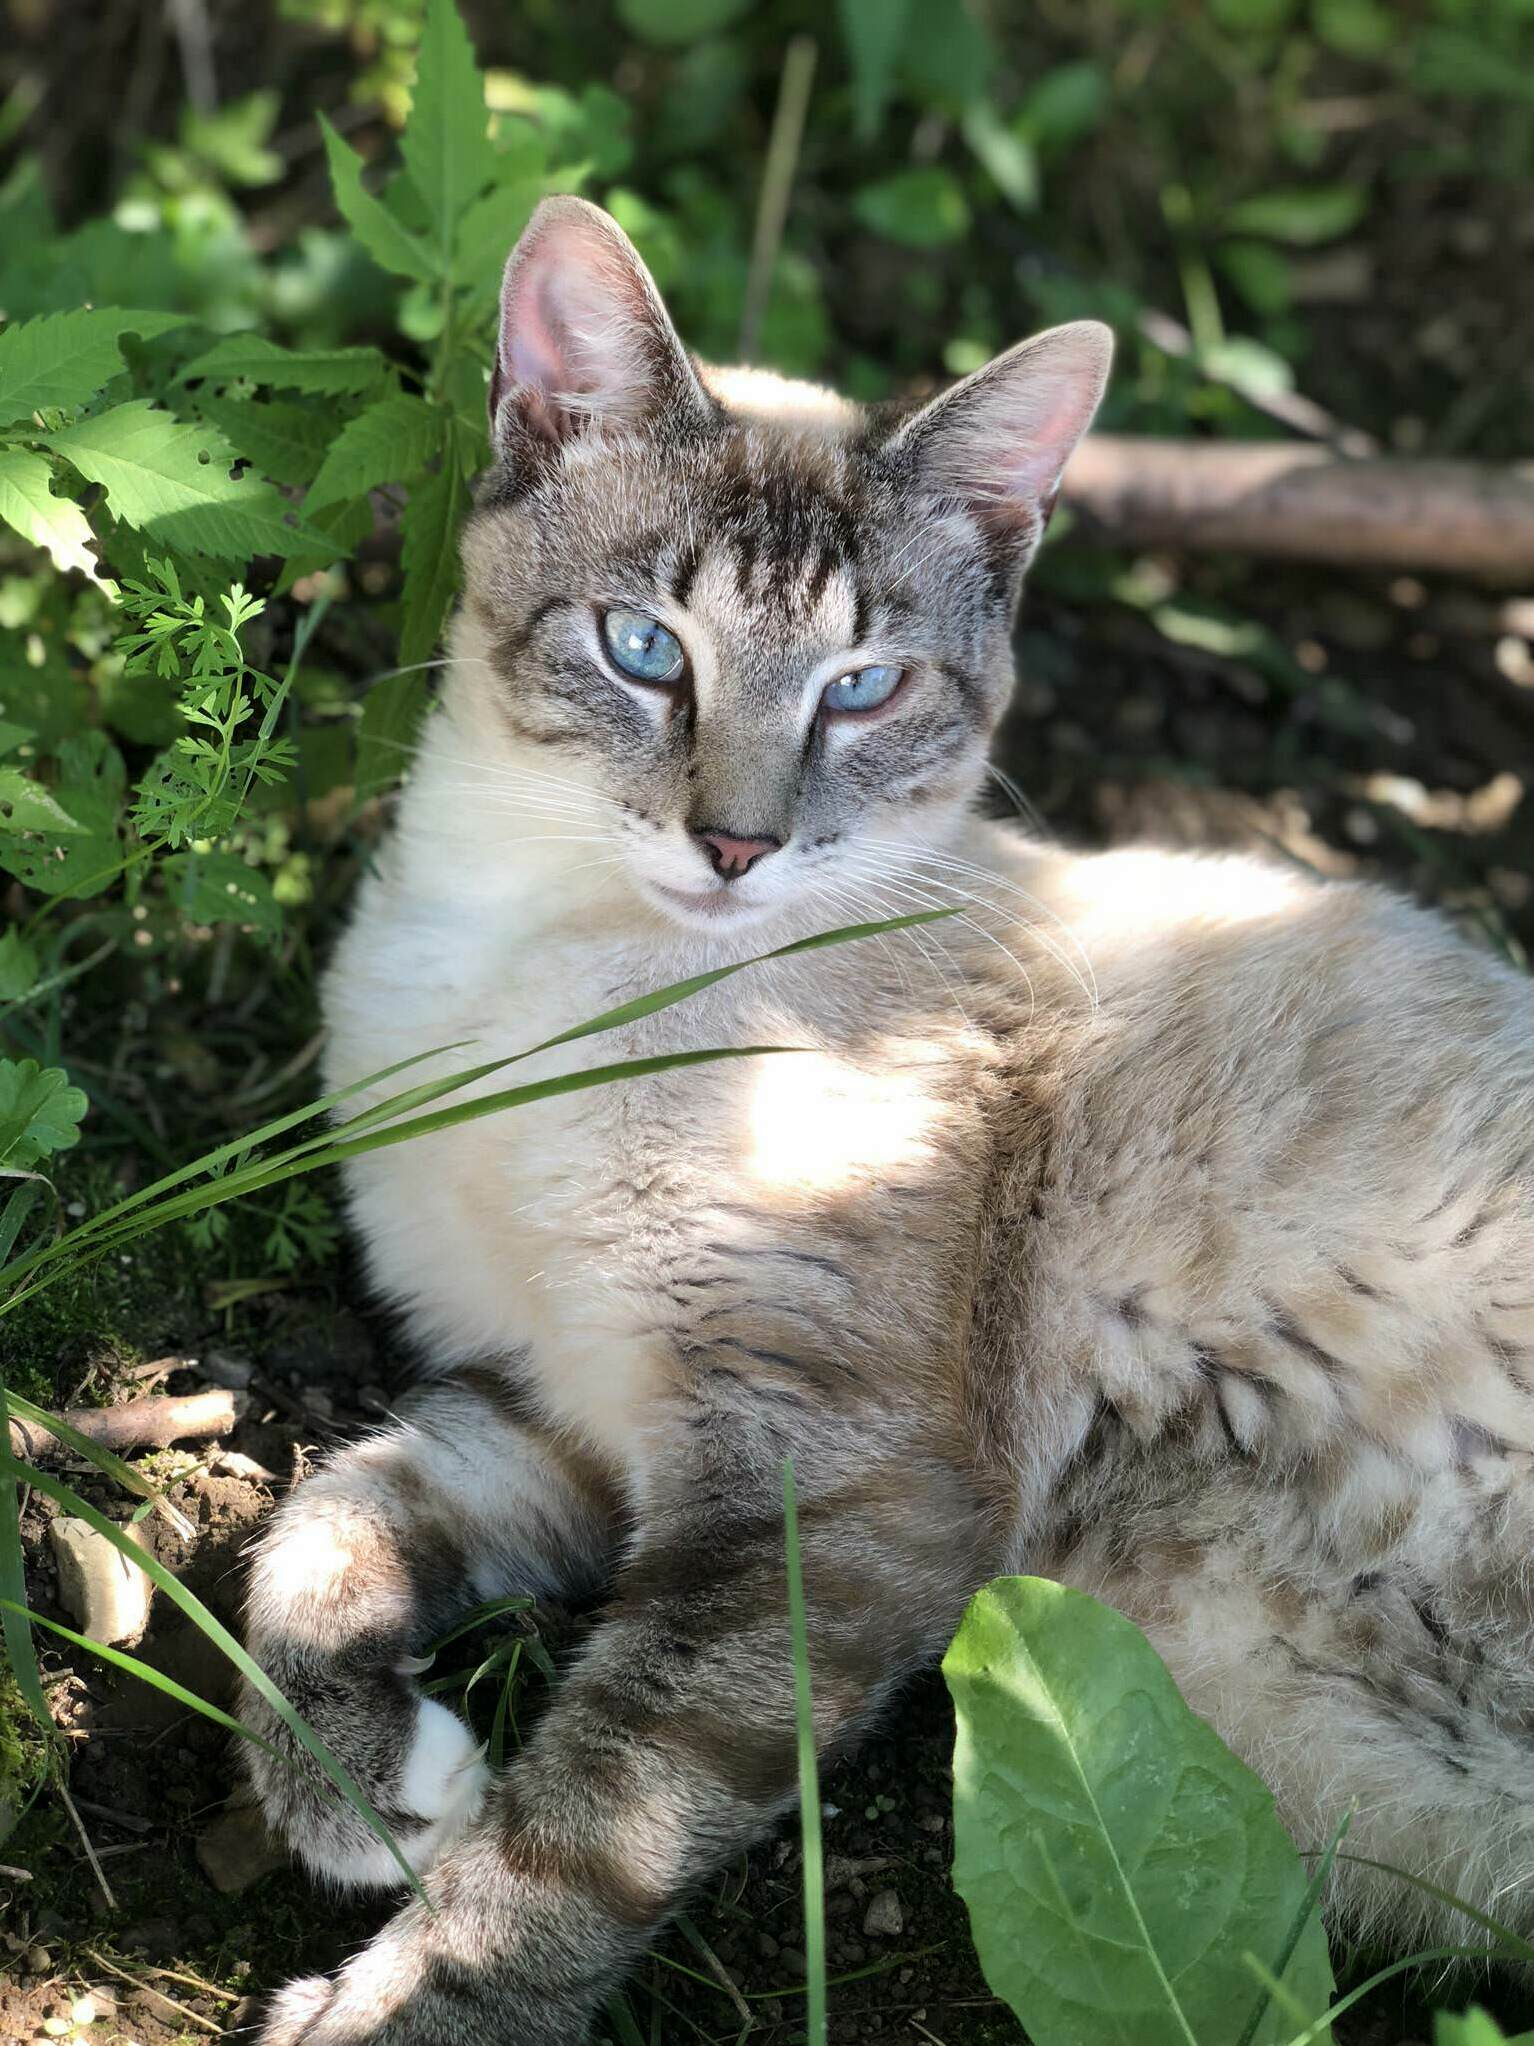 Prettiest stray cat ive ever seen